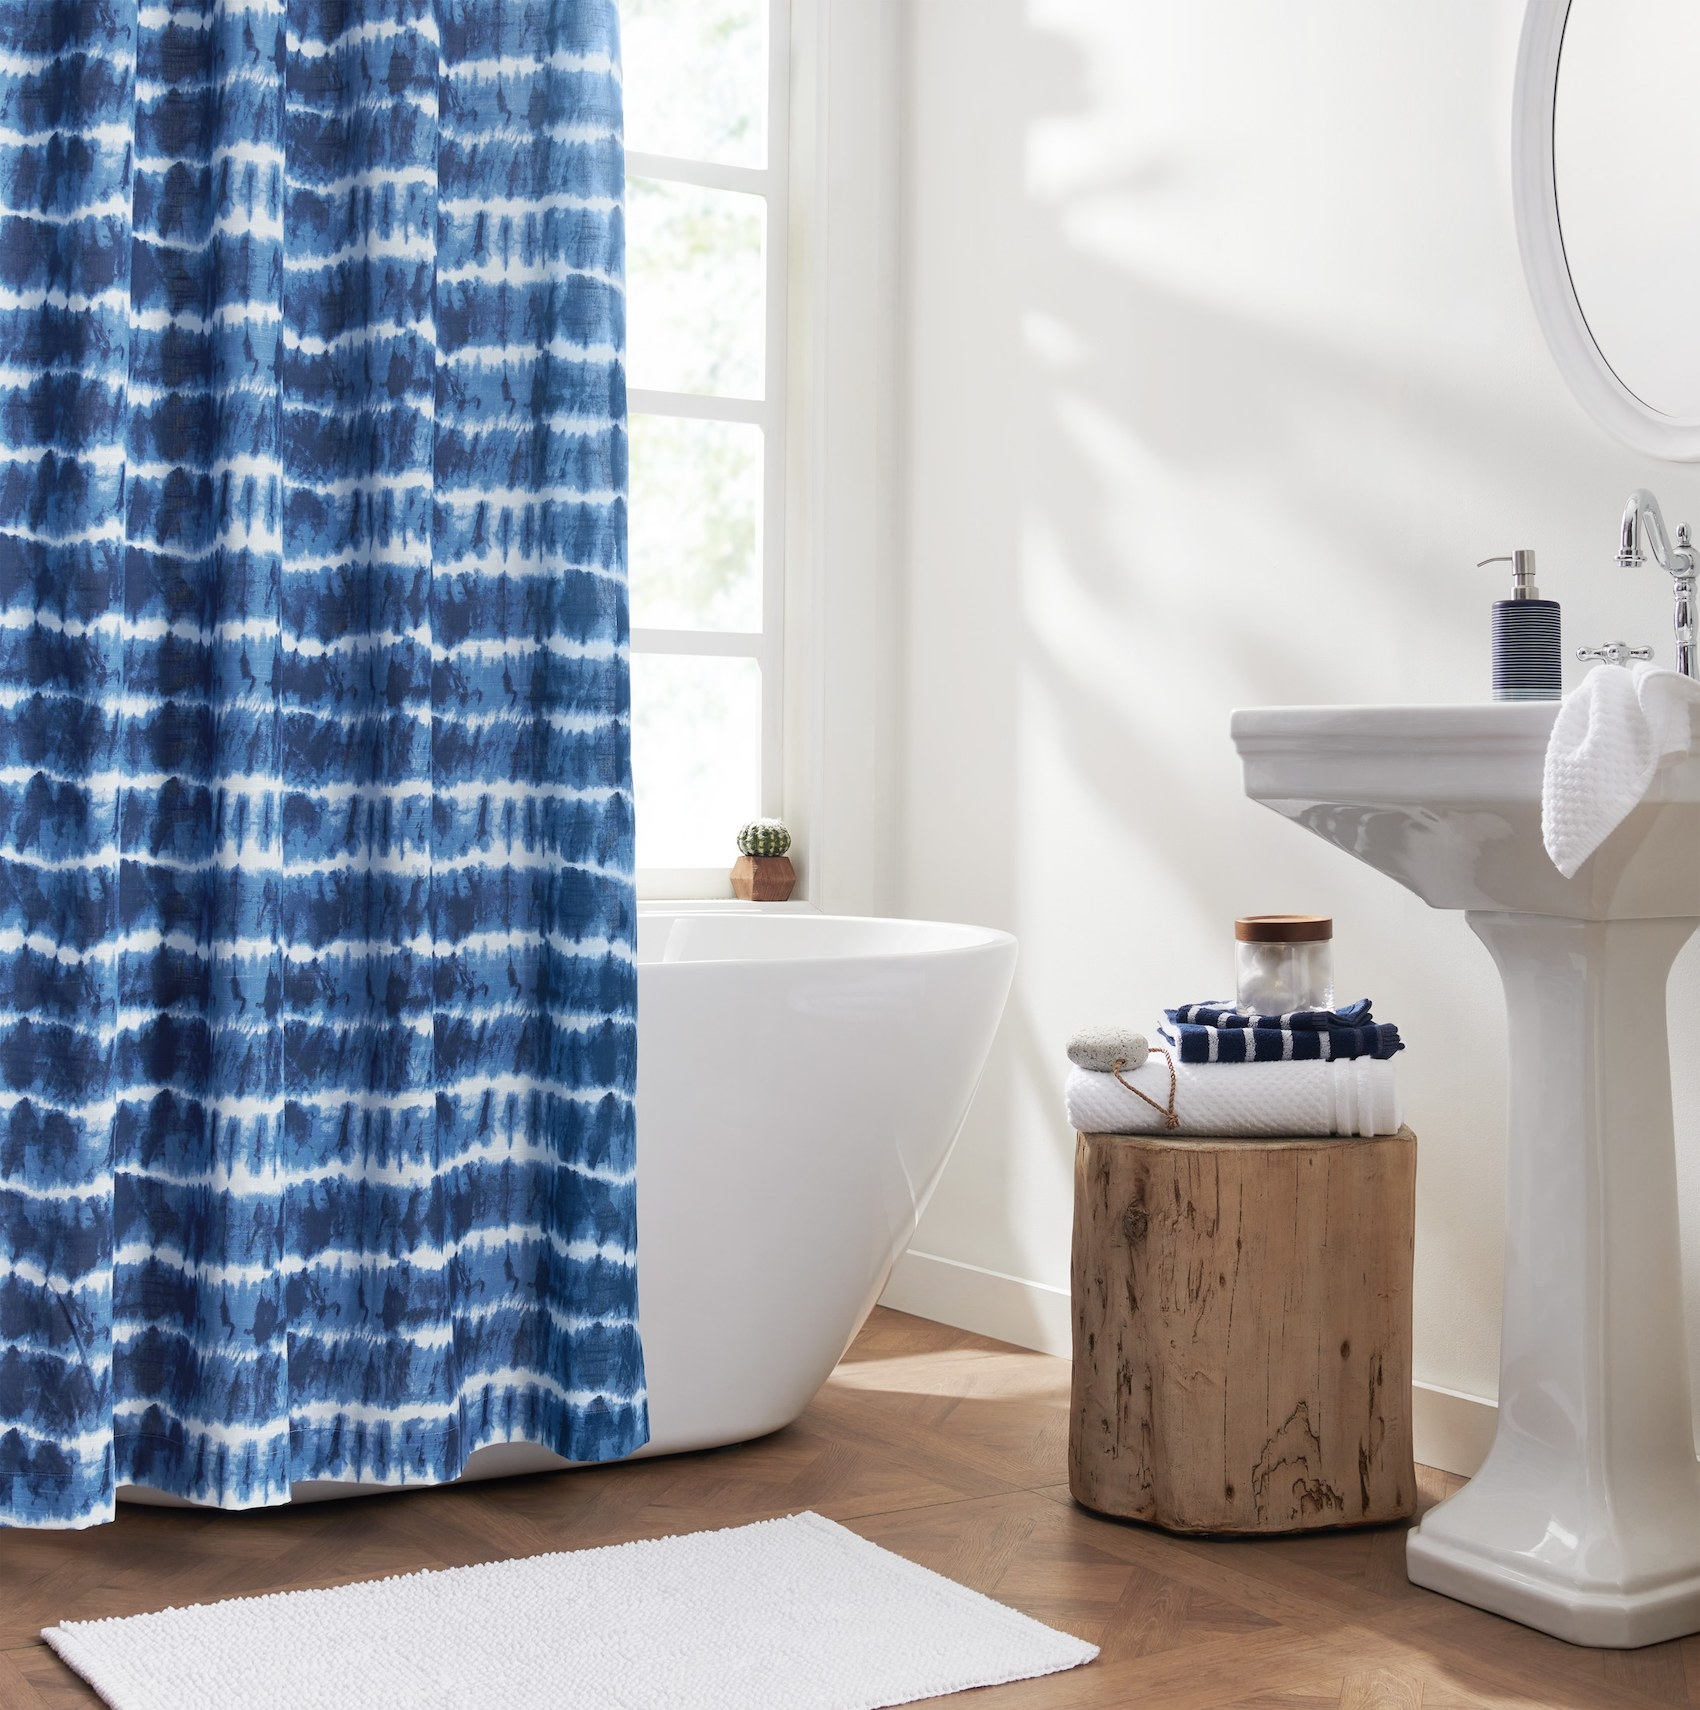 The blue and white tie dye shower curtain in a bathroom